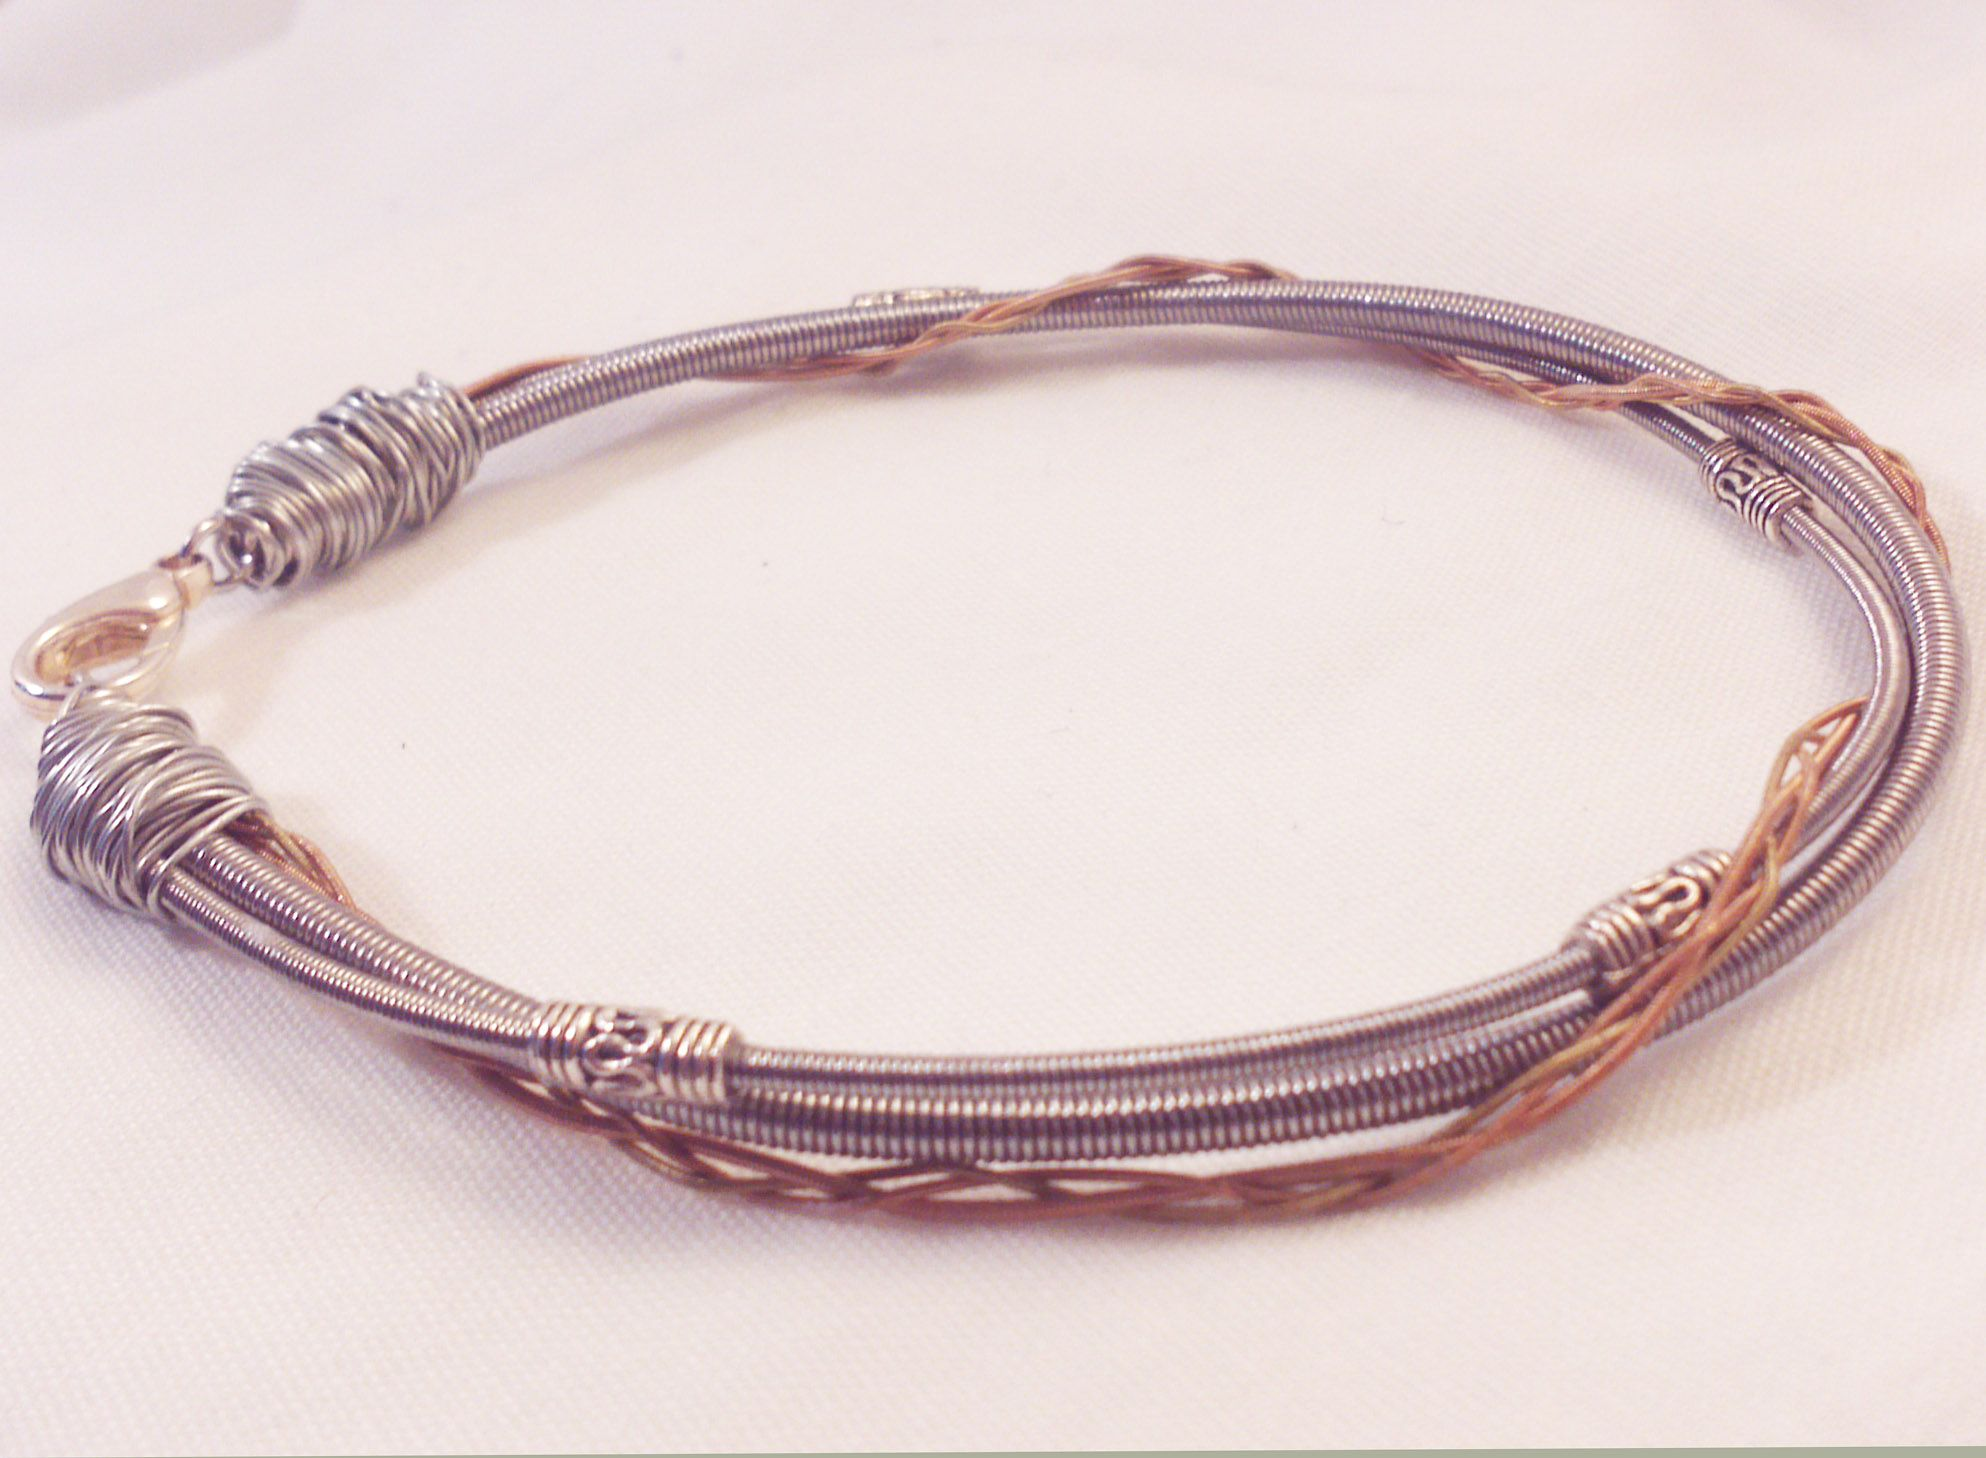 Elton John Piano Wire Bracelet With Davey Johnstone Guitar Strings